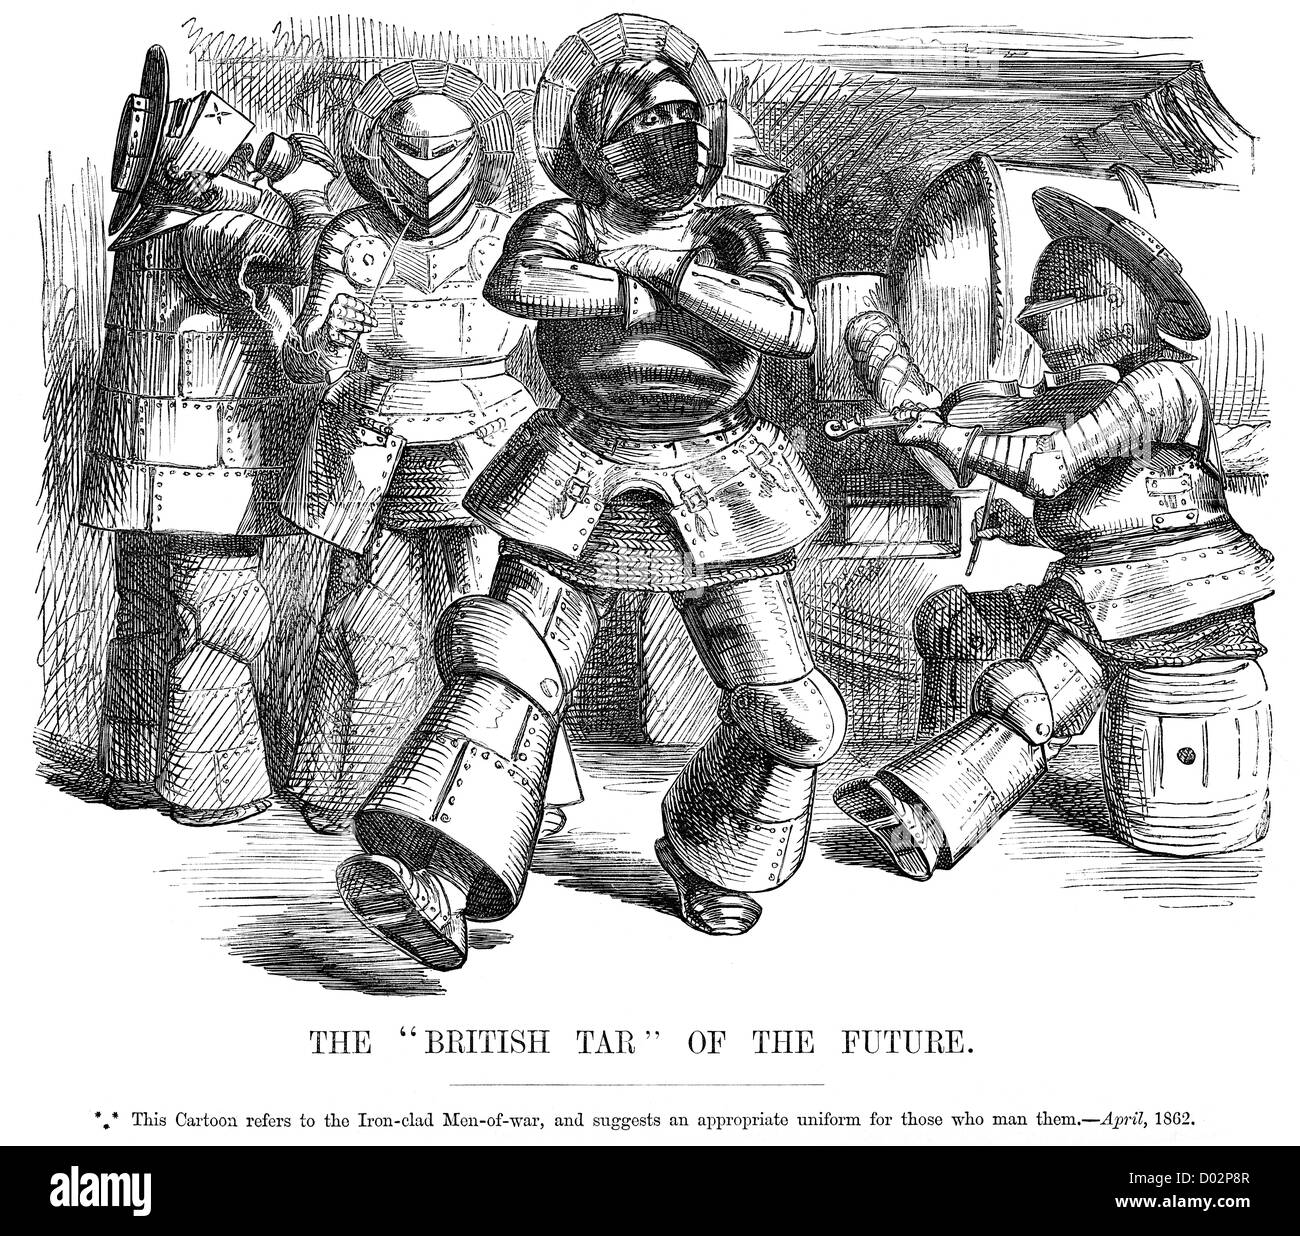 British Tar of the Future. Political cartoon about the rising of Ironclad Warships, April 1862 - Stock Image